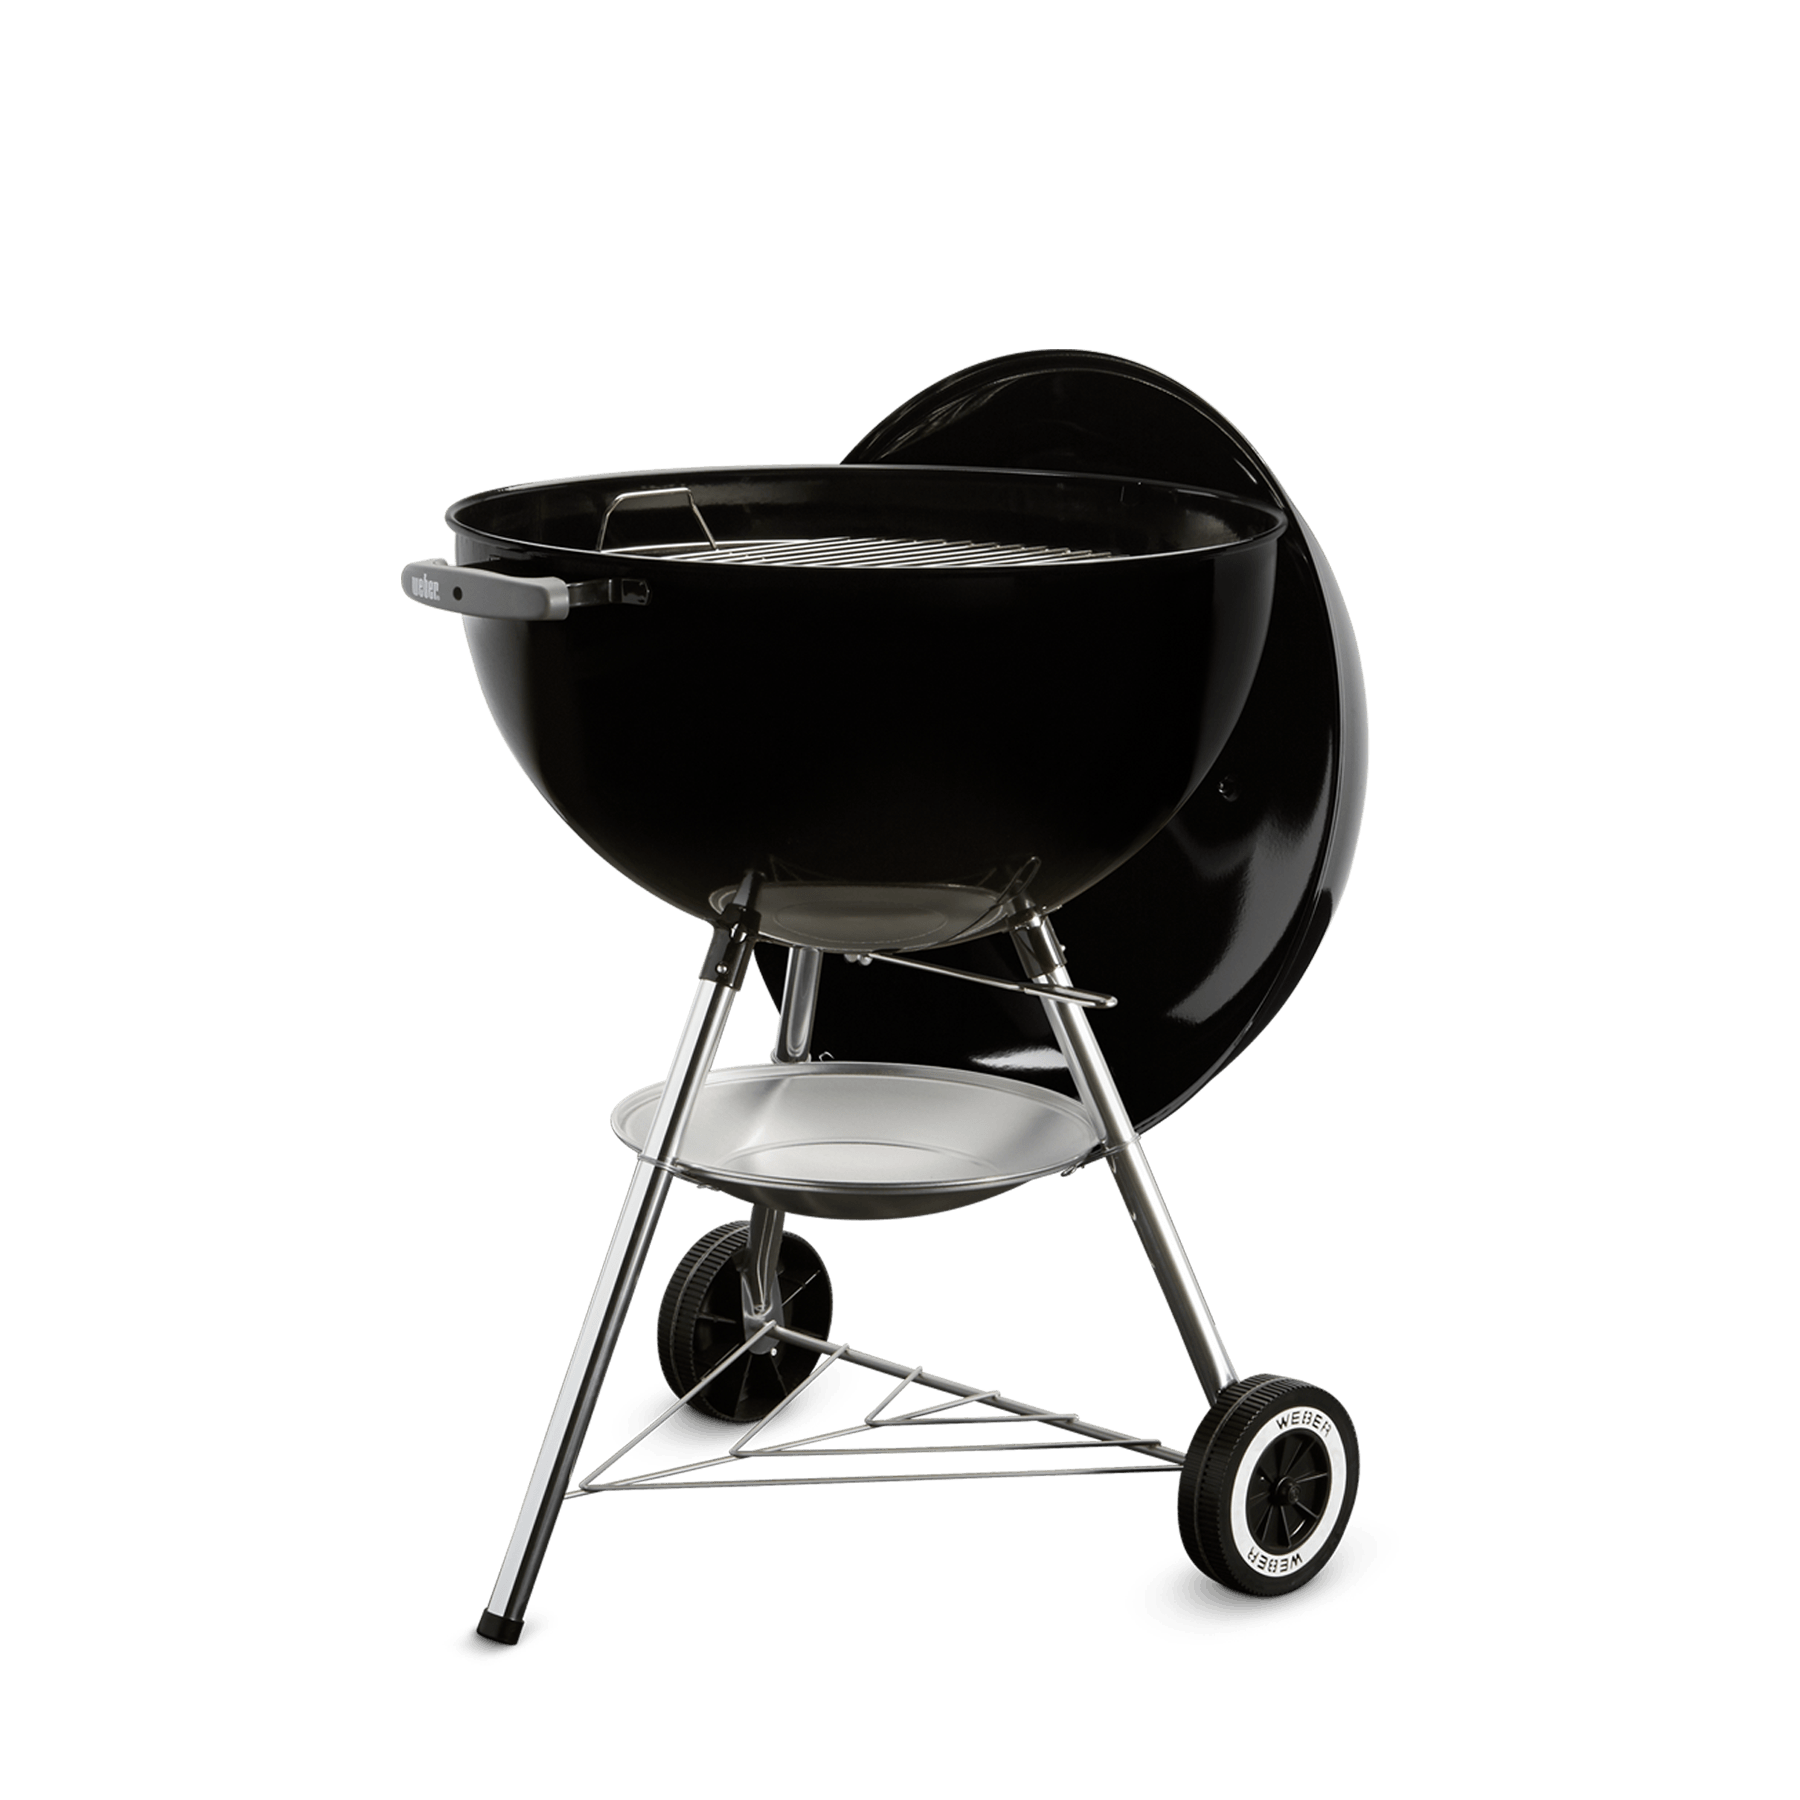 Original Kettle Charcoal Grill 57 cm